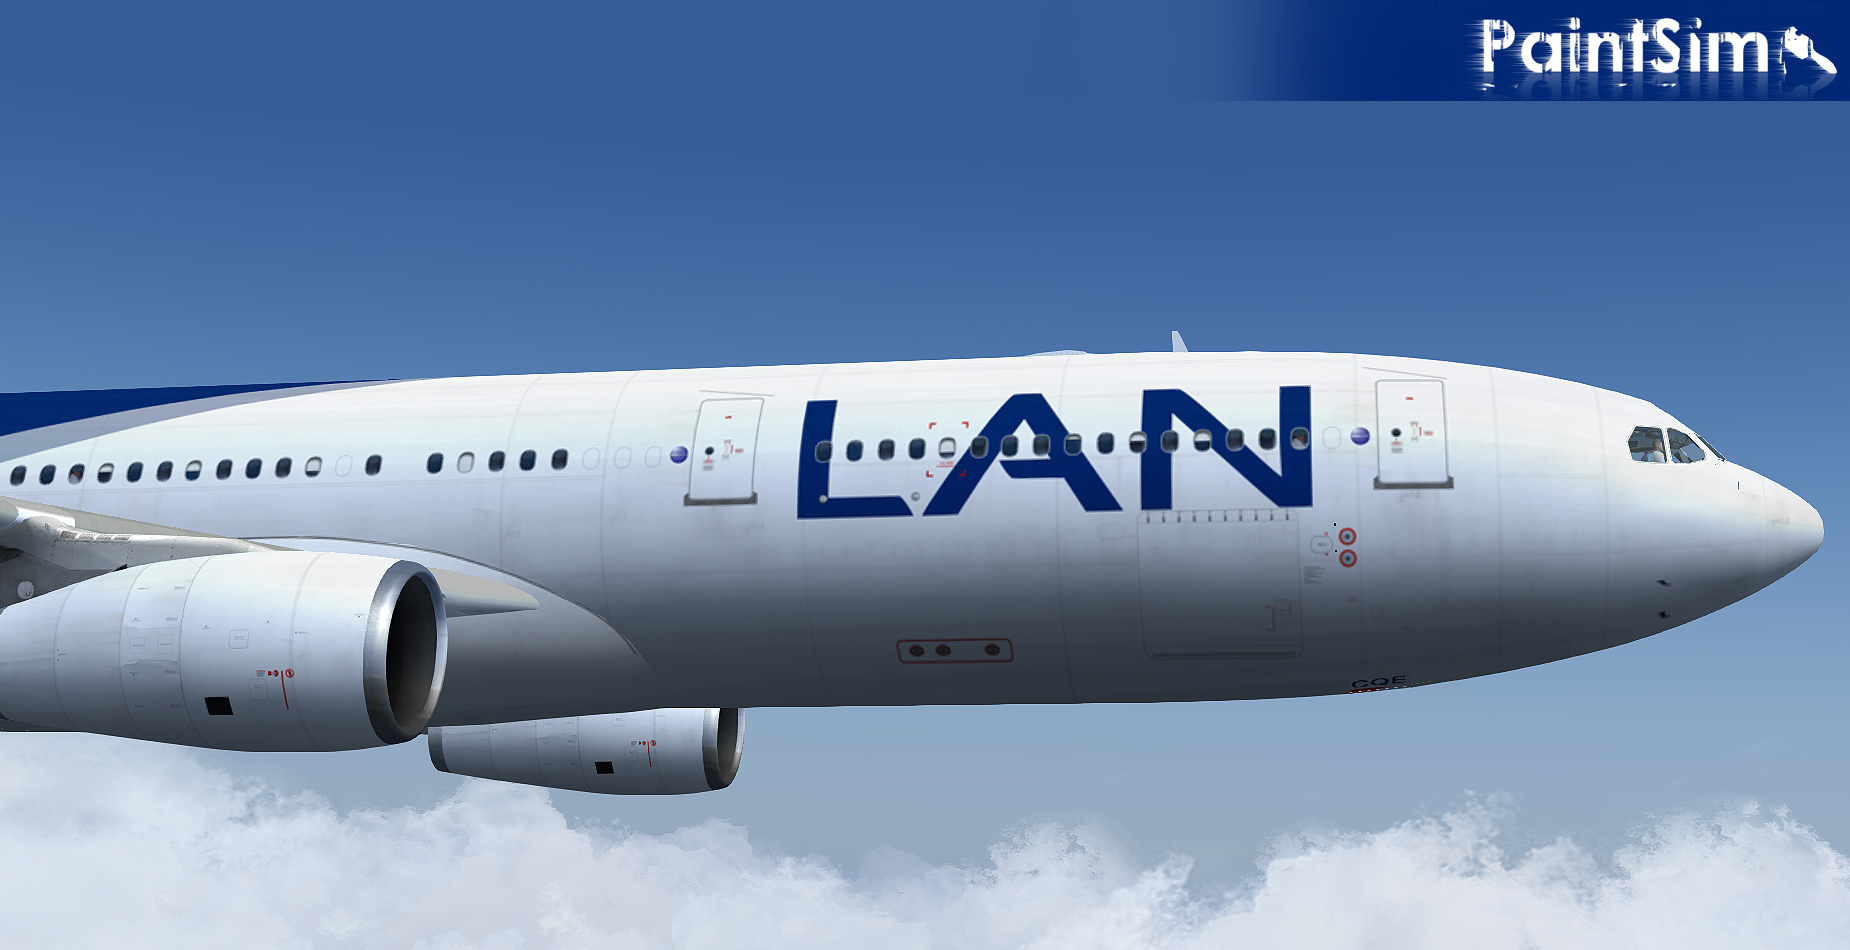 PAINTSIM - HD TEXTURE PACK FOR WILCO AIRBUS A340 FS2004